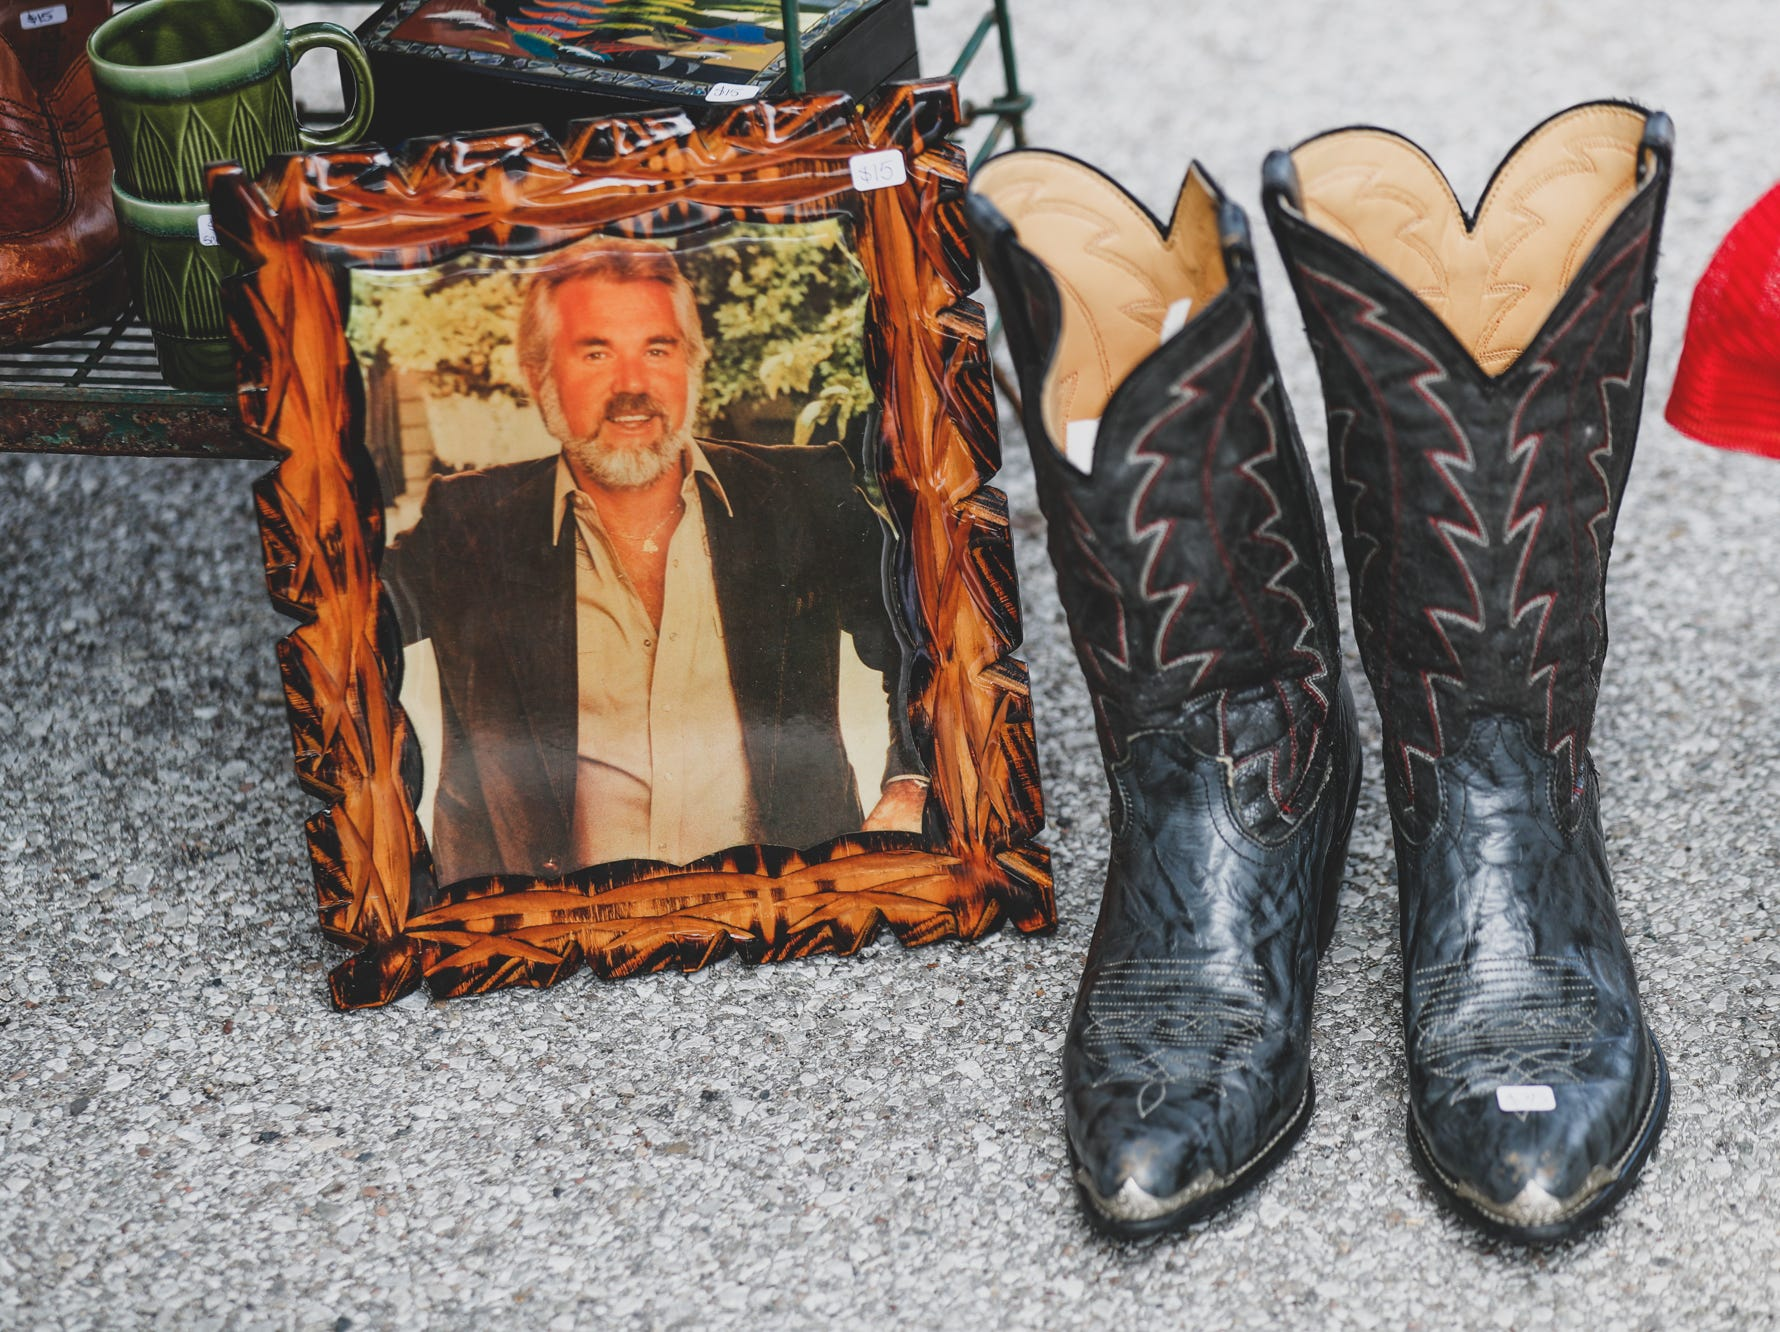 A 1980s Kenny Rogers portrait is for sale in the Roth Girl Vintage booth, during the Virginia Avenue Music Fest, held in Fountain Square, located in Indianapolis, on Saturday, May 11, 2019.